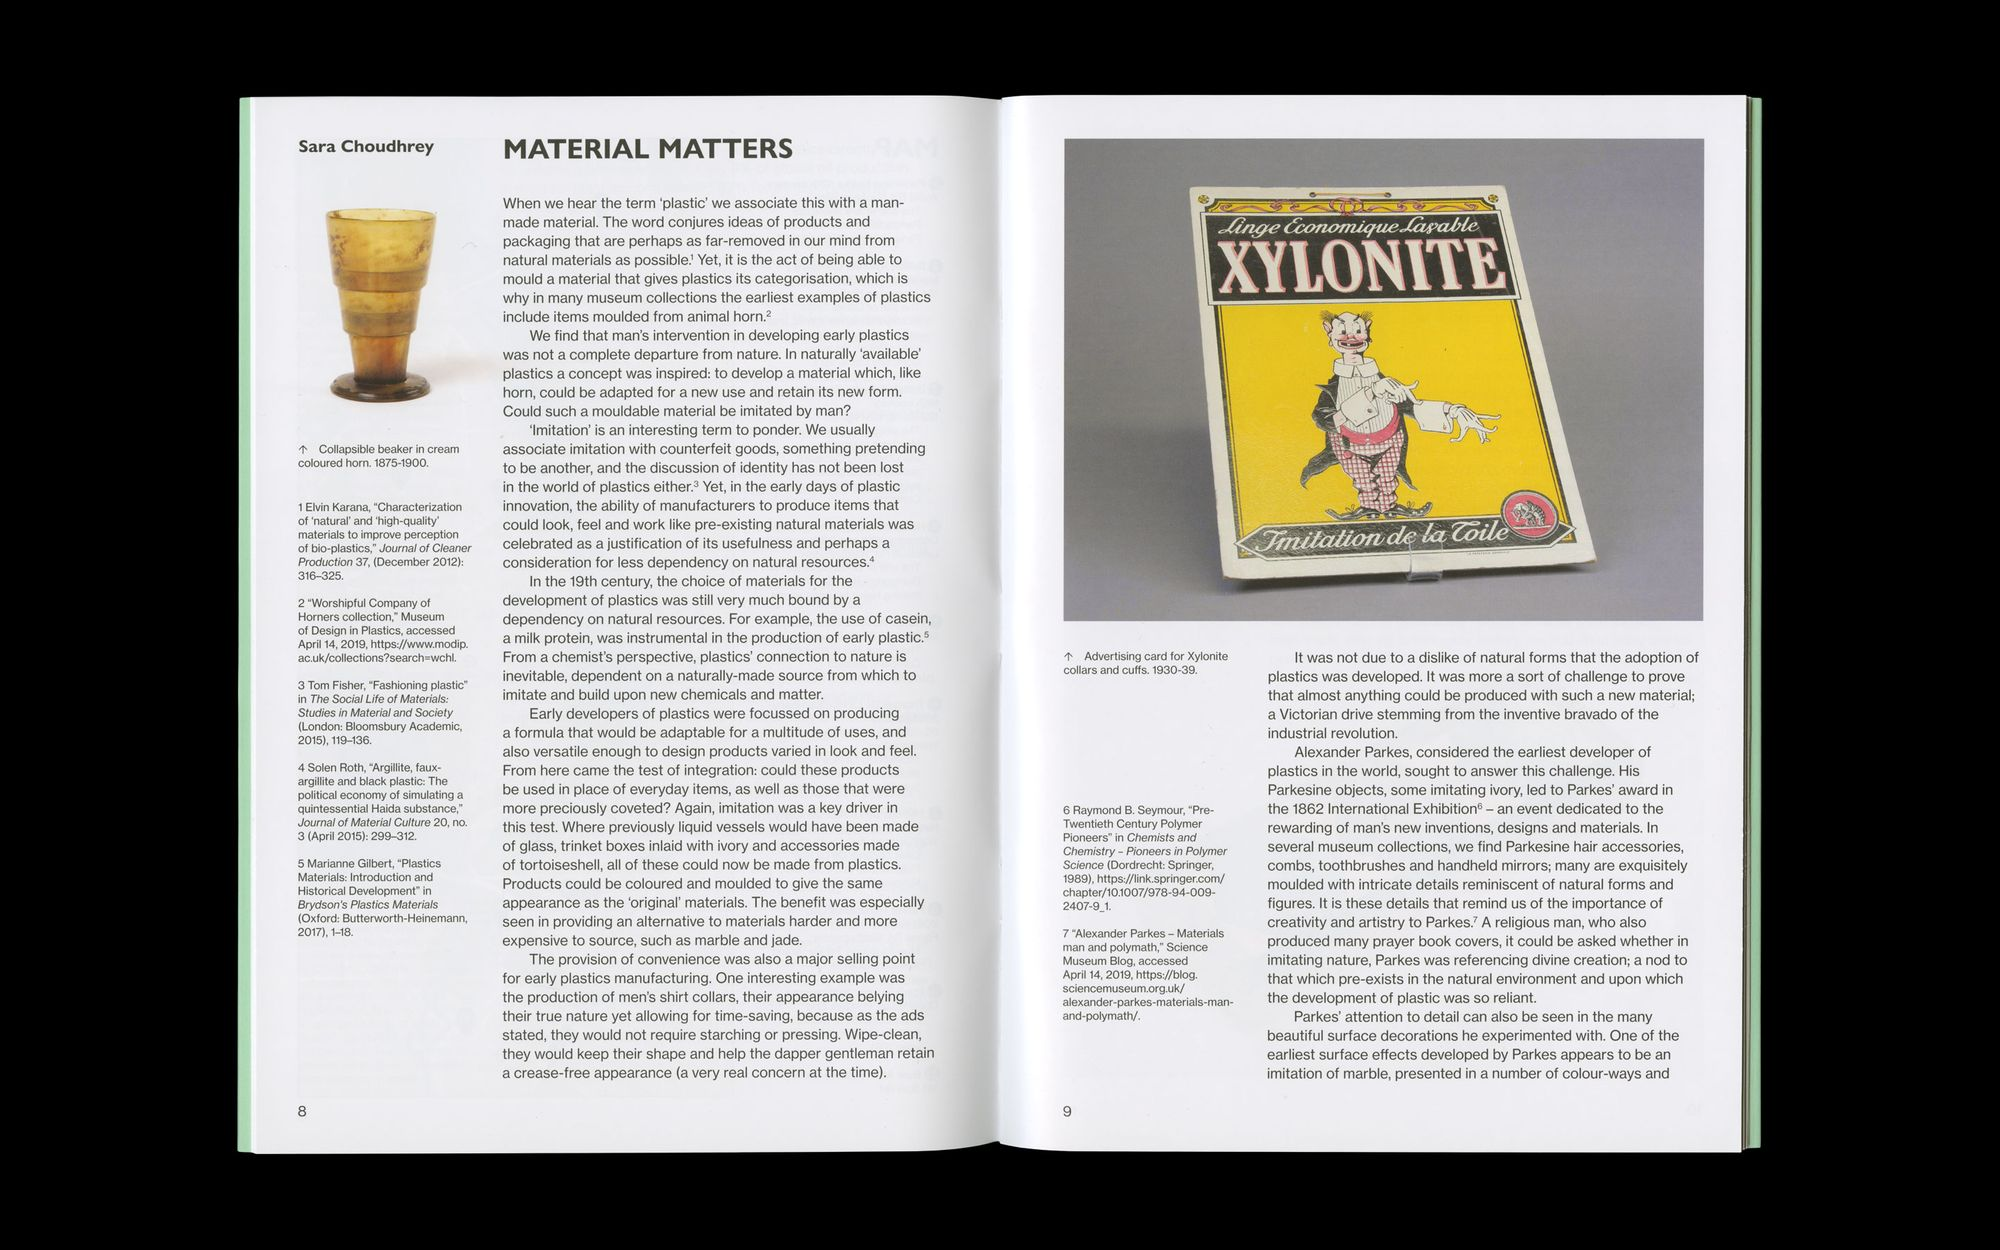 Scan of inside spread of Plastics publication